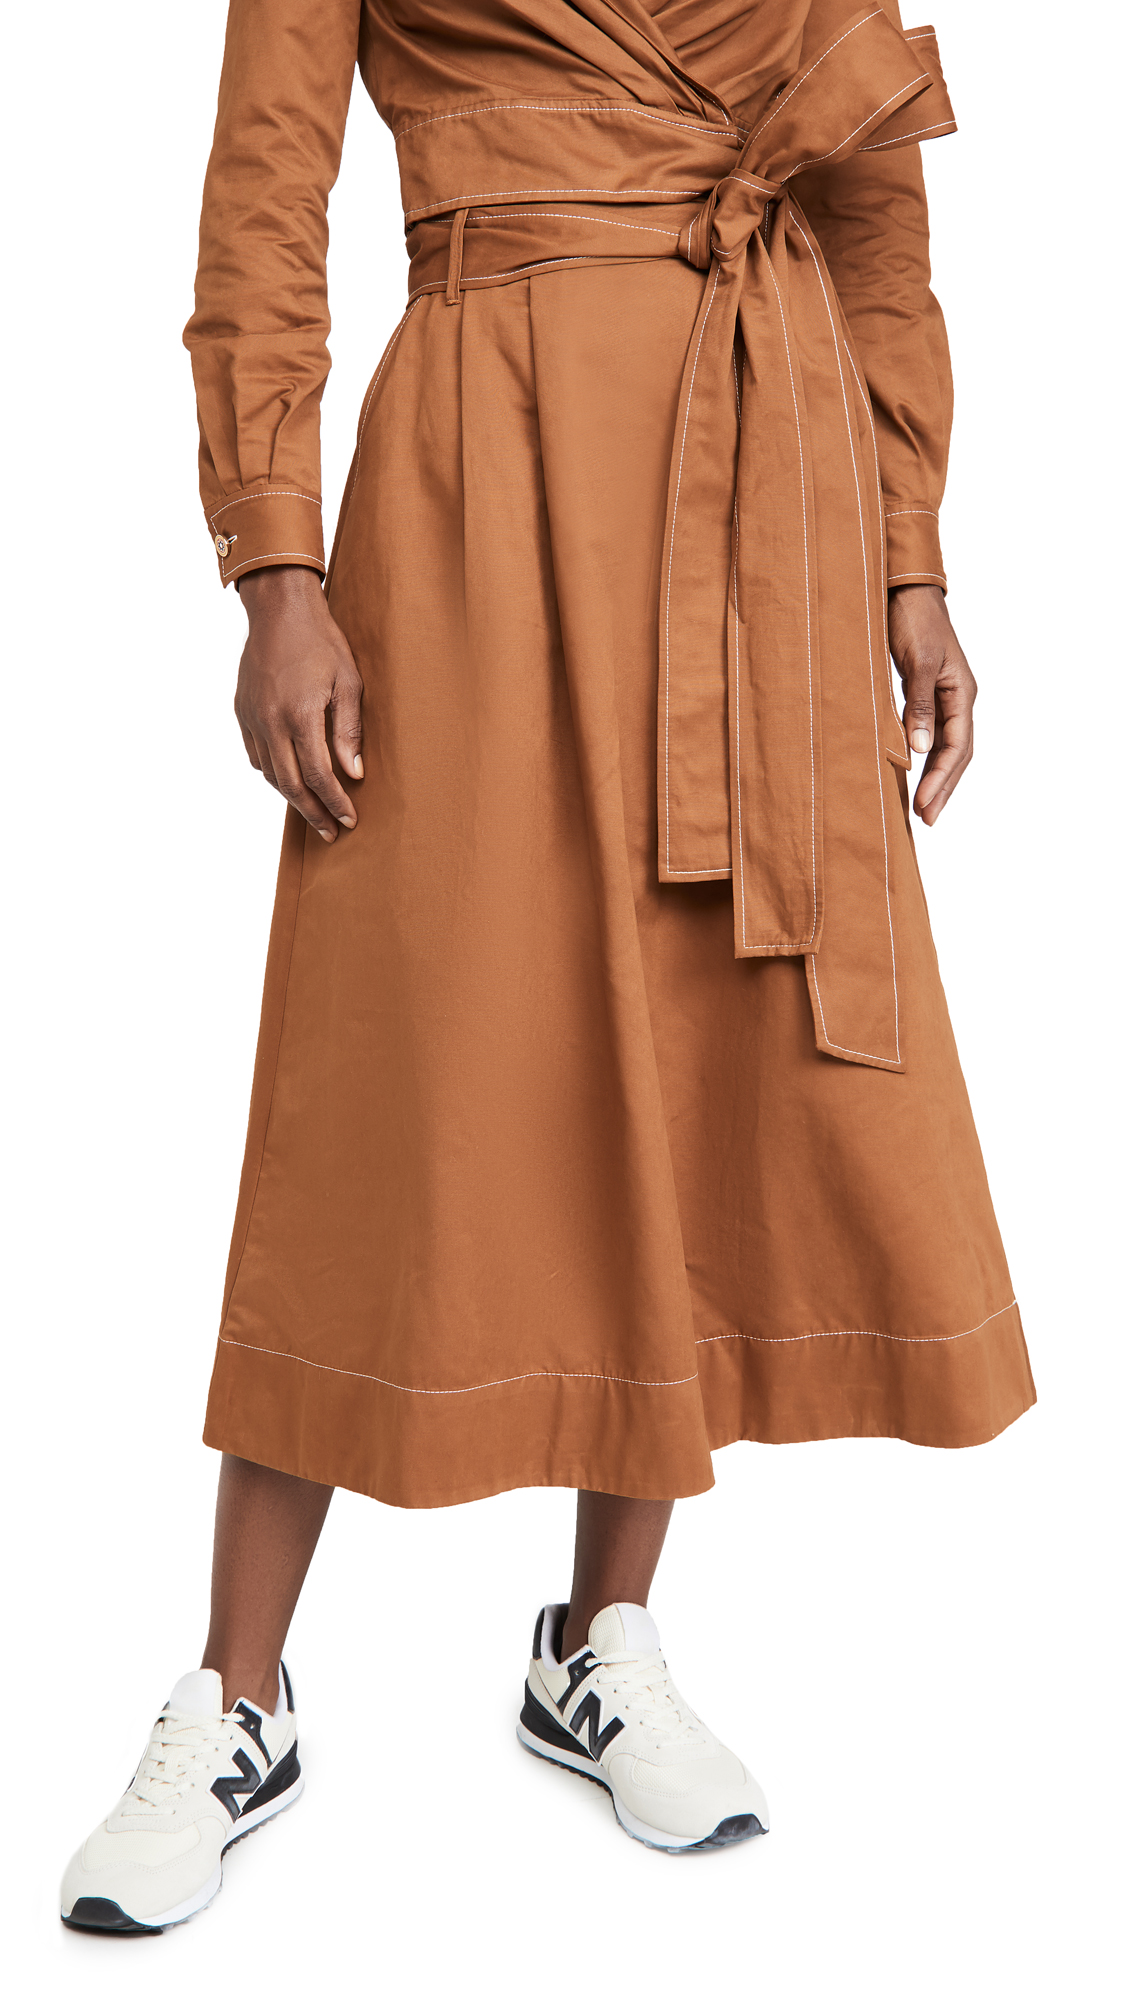 STAUD Snoop Skirt